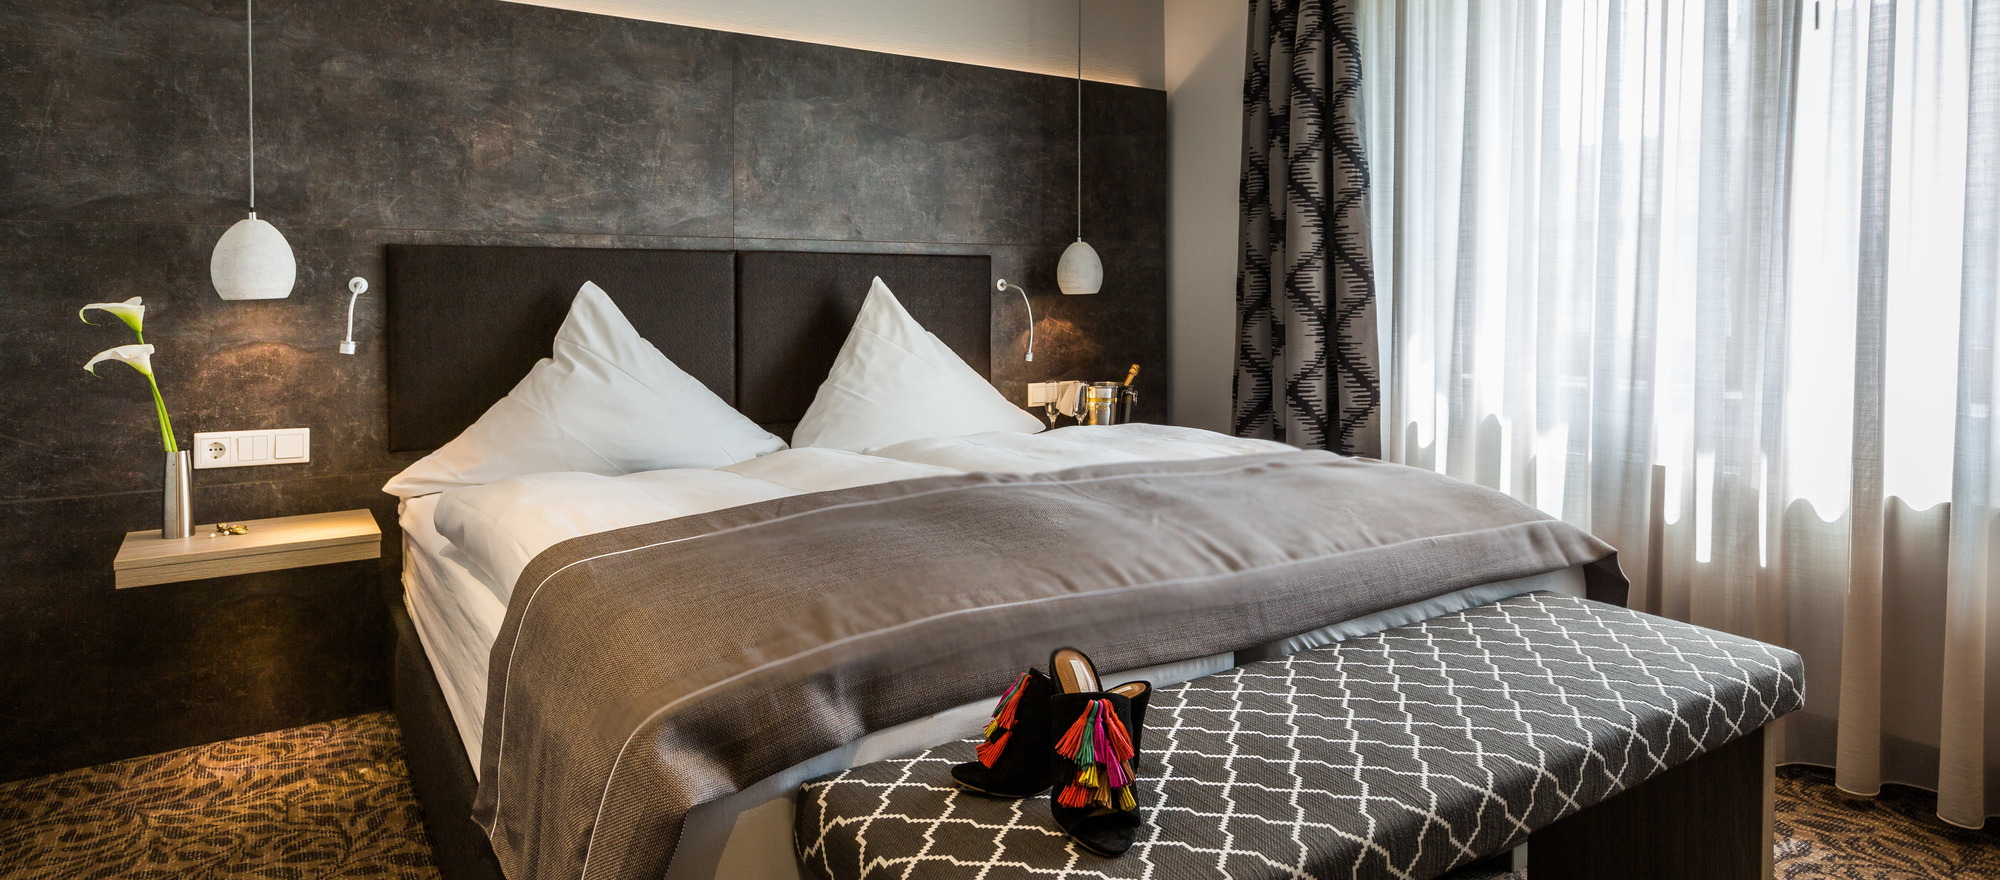 Generous and modern furnished rooms in the 3-star hotel Ringhotel Germanenhof in Steinheim-Sandebeck